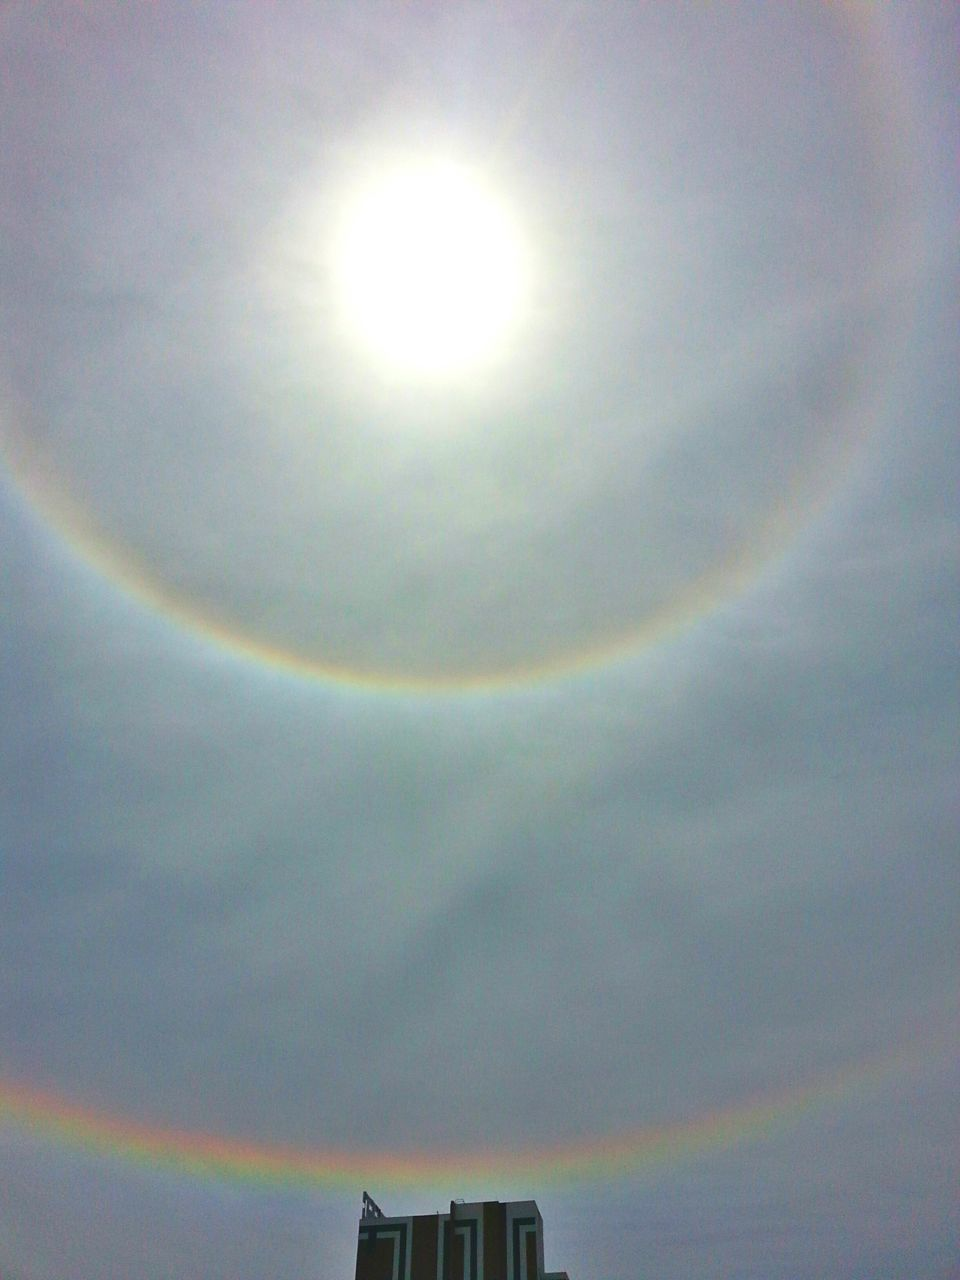 rainbow, sky, sun, low angle view, no people, sunlight, day, outdoors, nature, beauty in nature